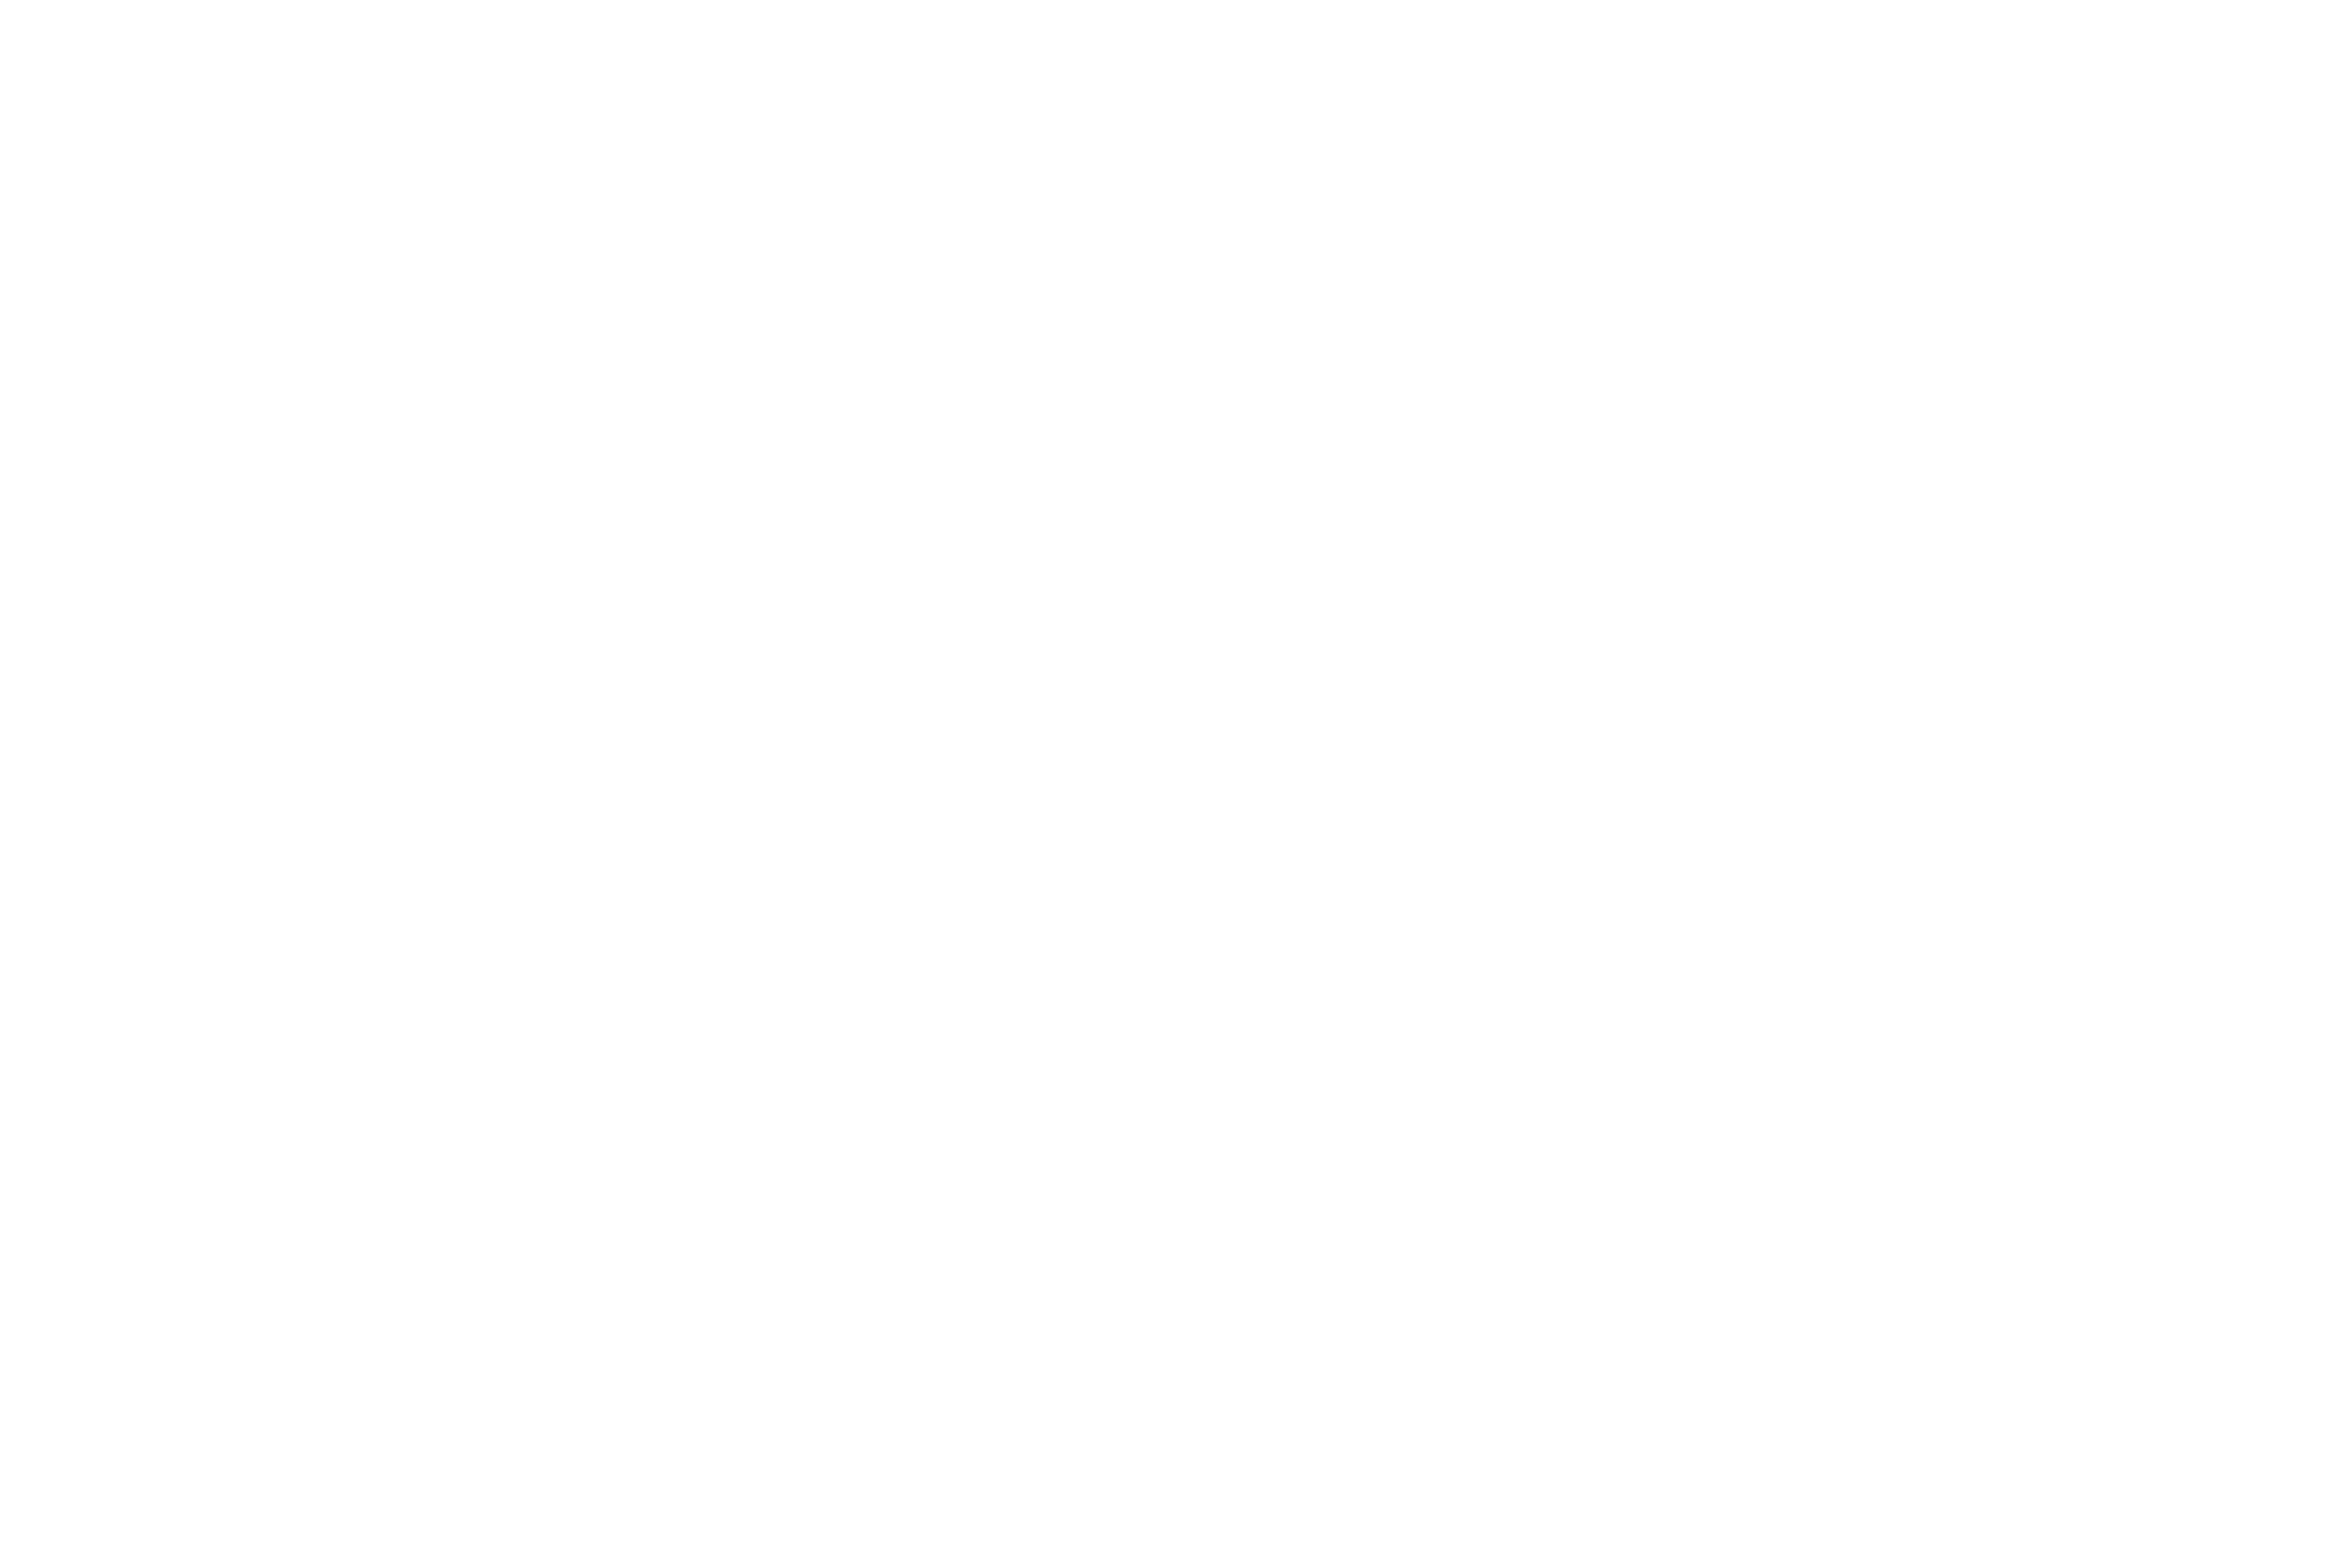 ebba.network